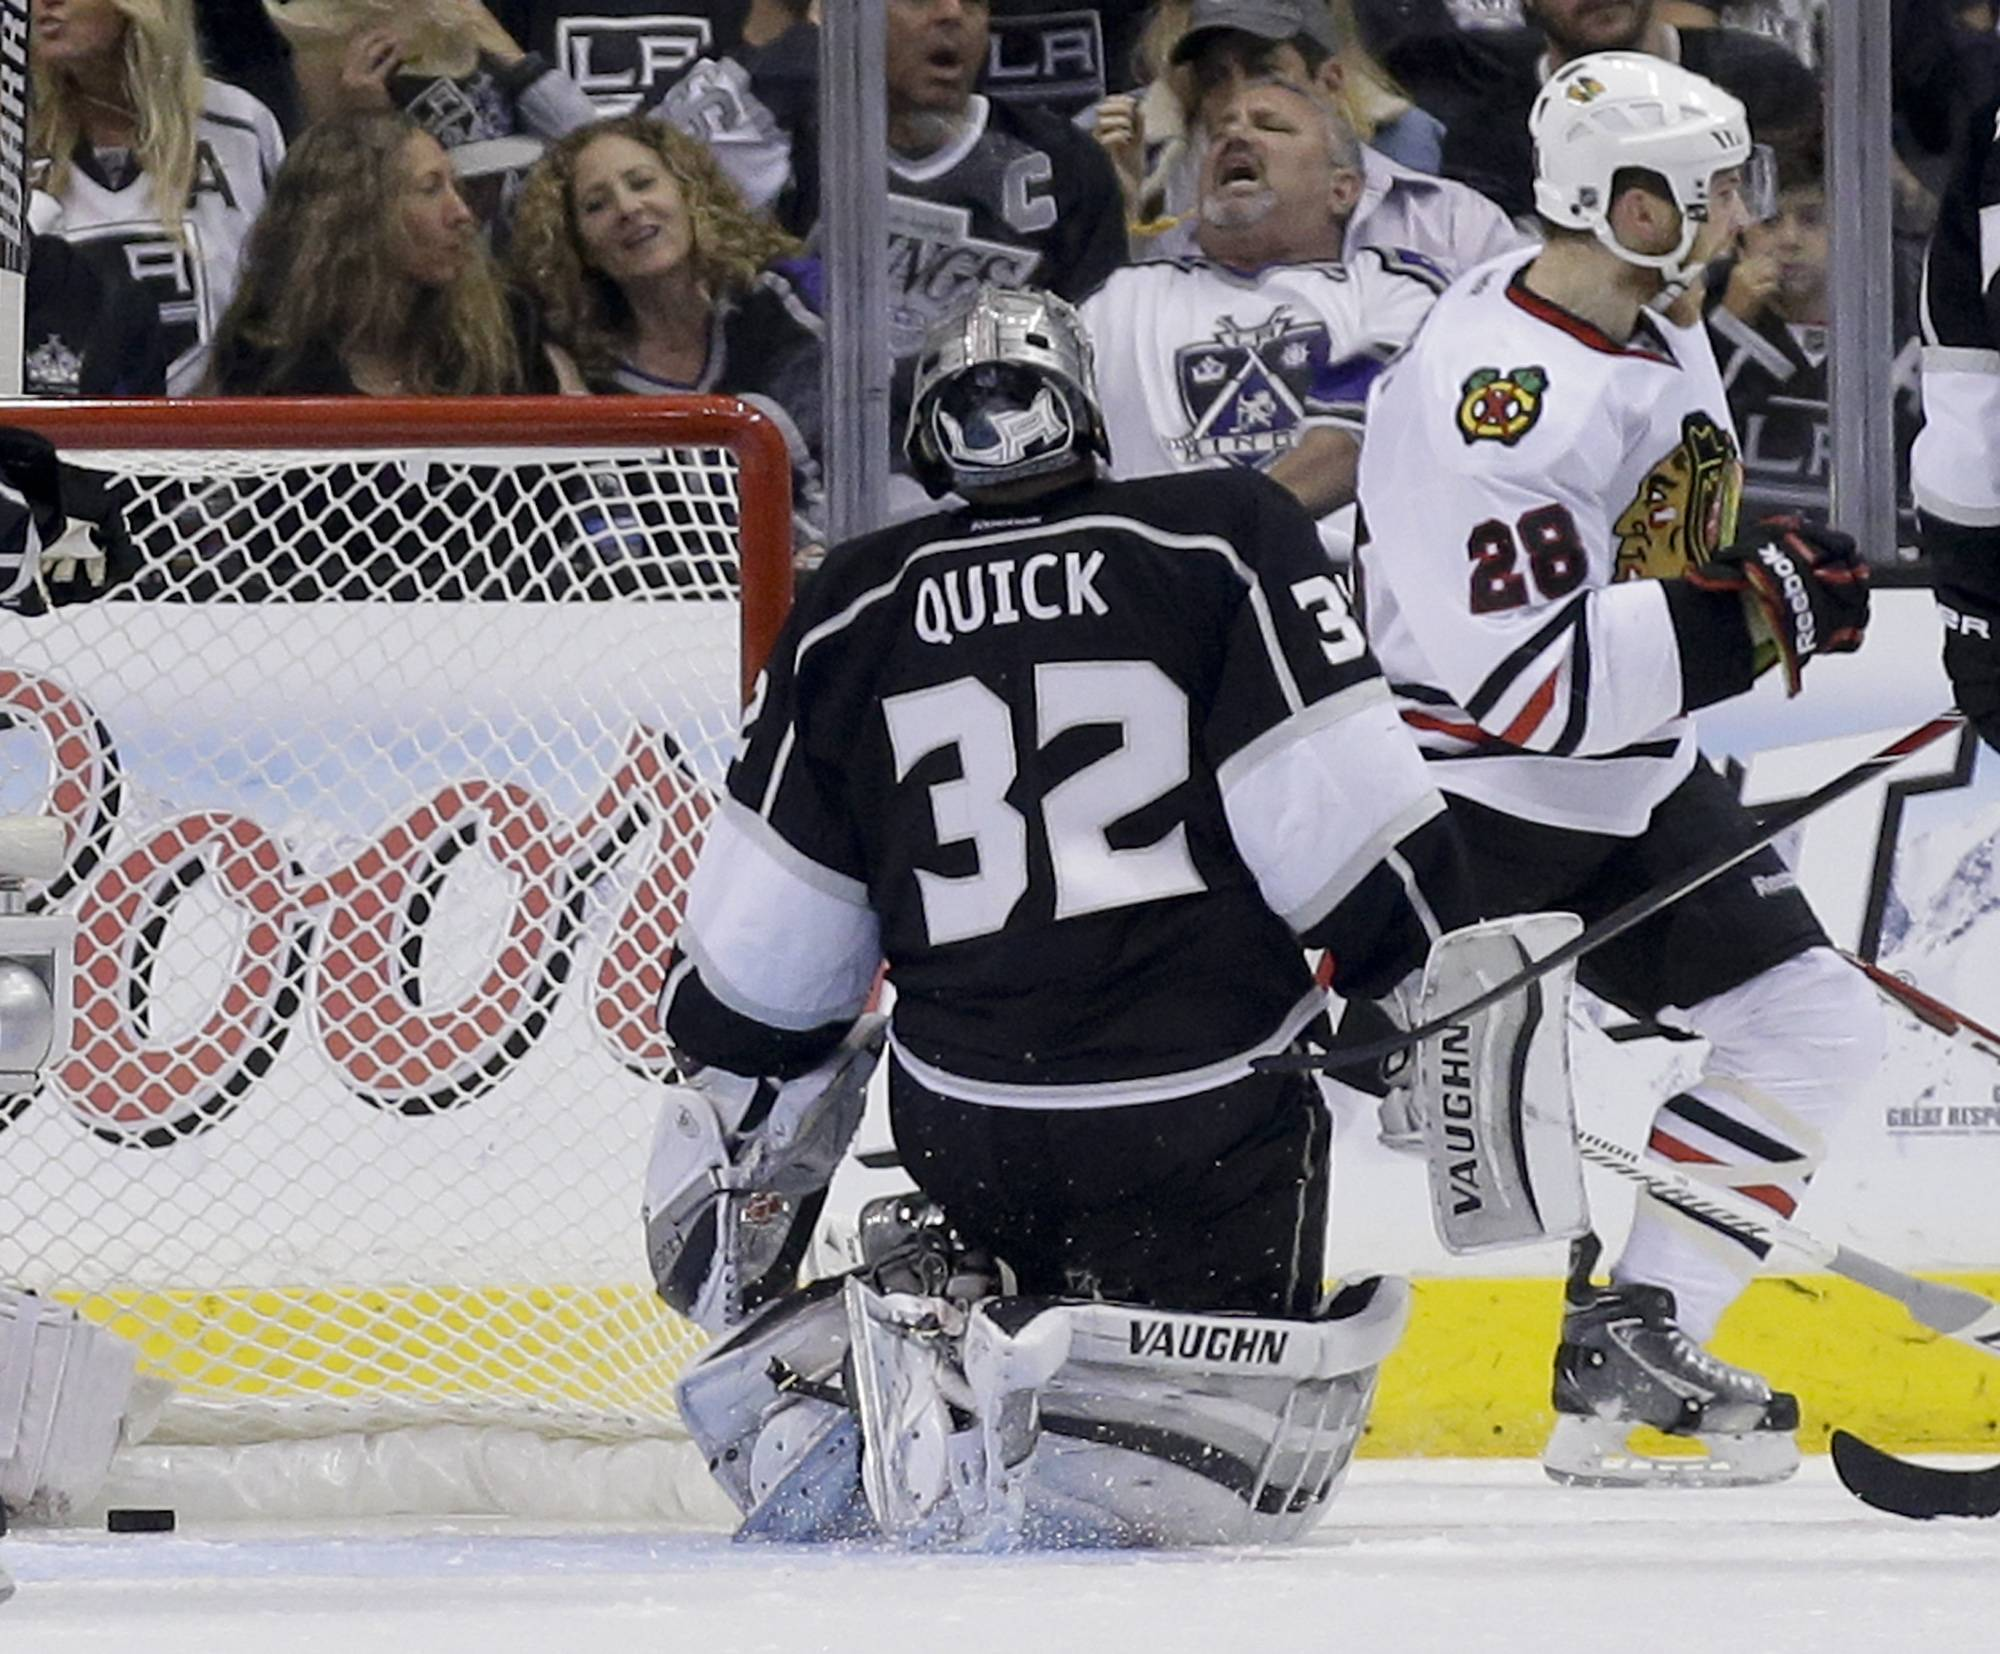 Chicago Blackhawks right wing Ben Smith, right, celebrates after scoring on Los Angeles Kings goalie Jonathan Quick during the second period.